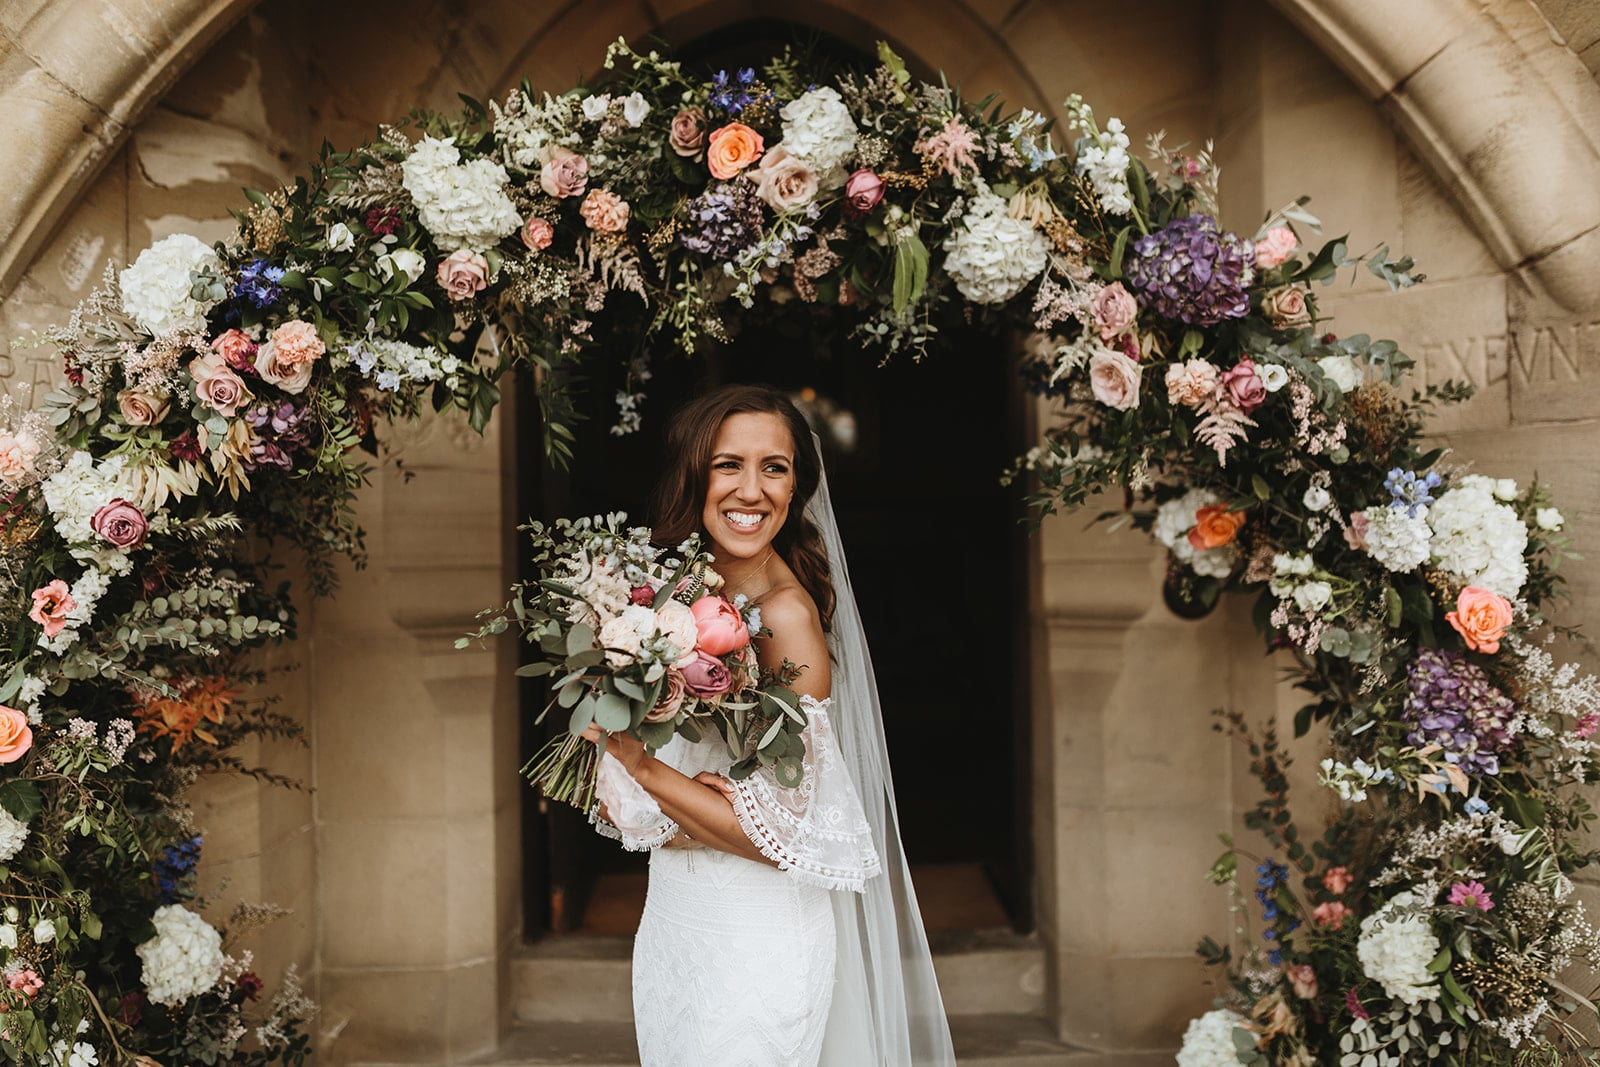 photo booth backdrop wedding flowers